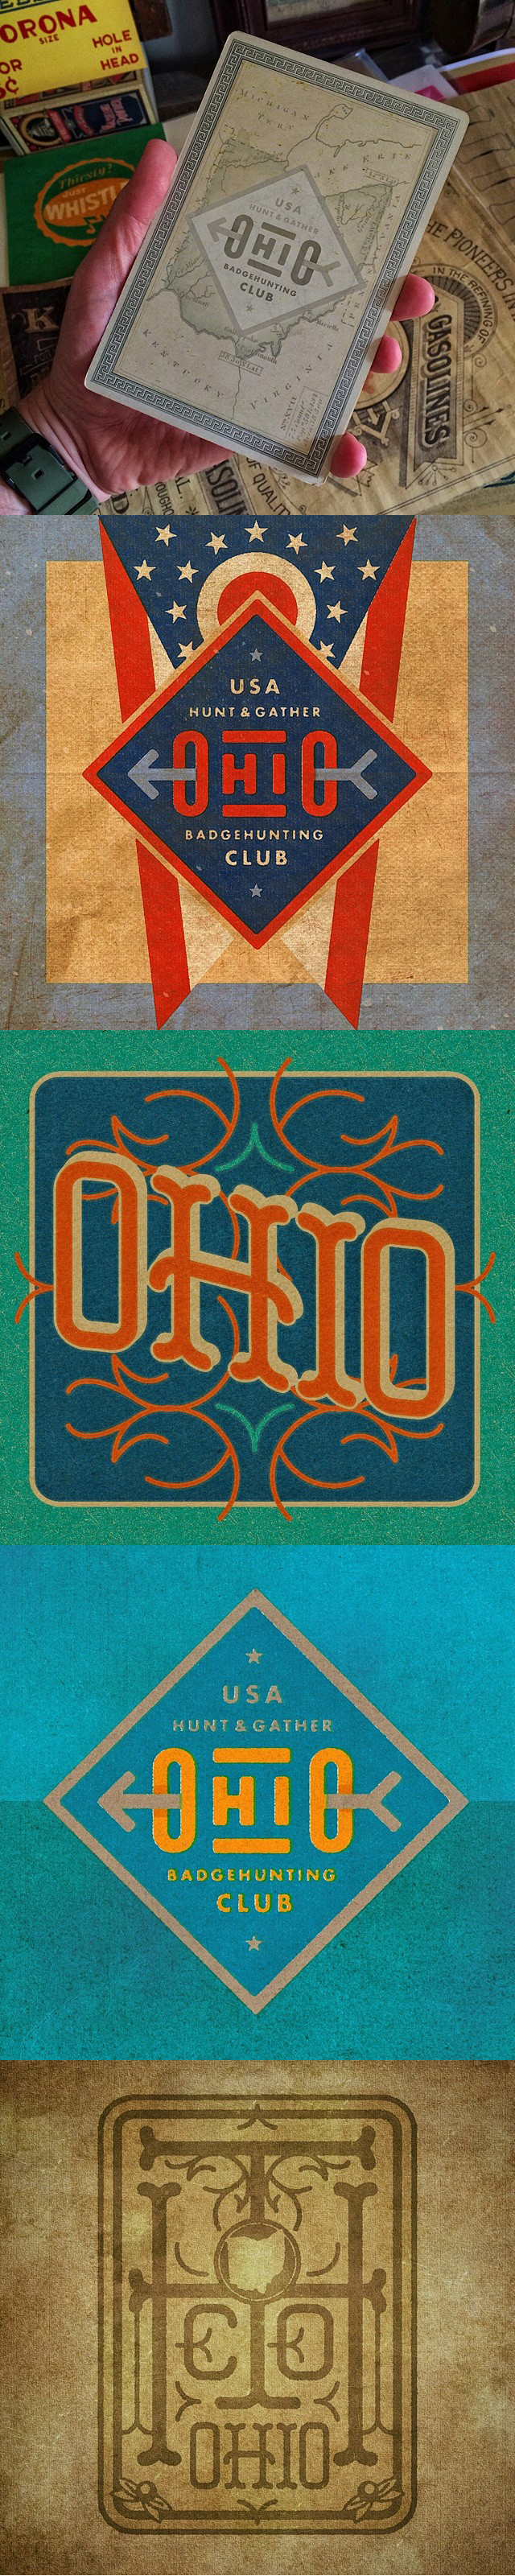 Ohio Badges- vintage studies and collaborations.  The Ohio Badgehunting Club studies are a collaboration with Allan Peters.  He provided me with his vector file and I remixed the palettes, textures and vintage details.  The additional Ohio-themed badges are Type Hunter originals.  #typehunter #typehunting #badgehunting